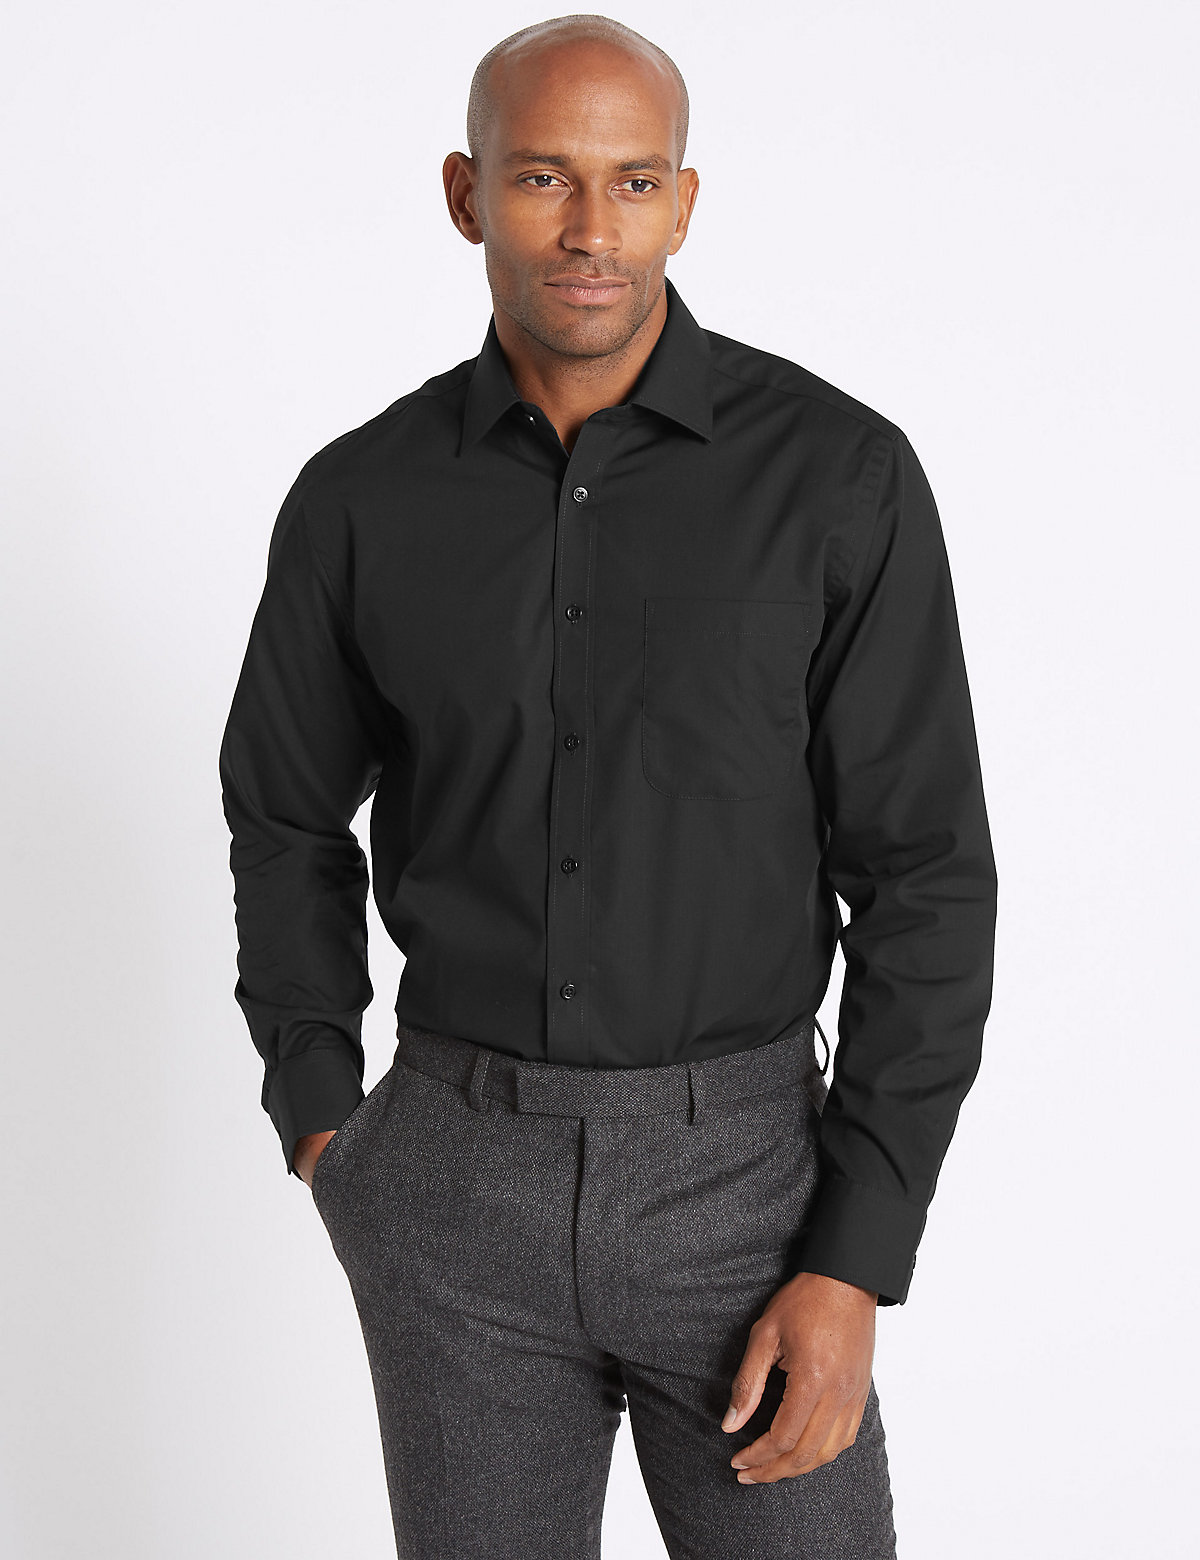 Mens Black Formal Shirts | M&S